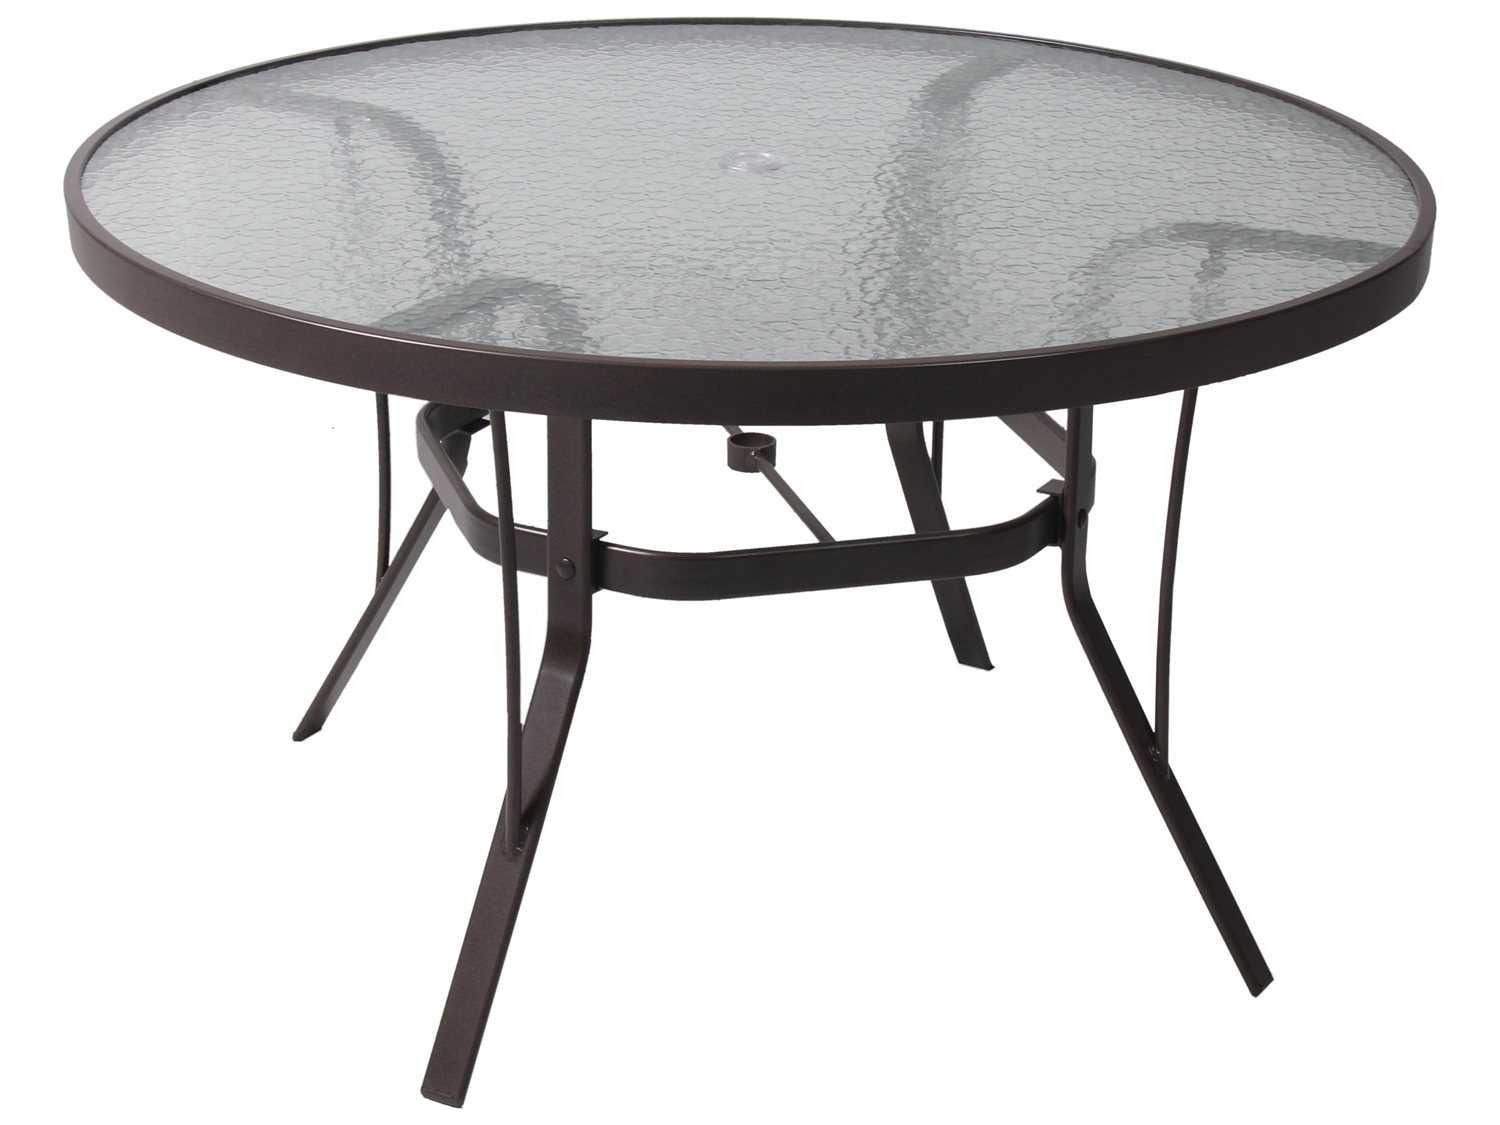 100 60 Inch Round Patio Table Americas Best Furniture Check More At Http